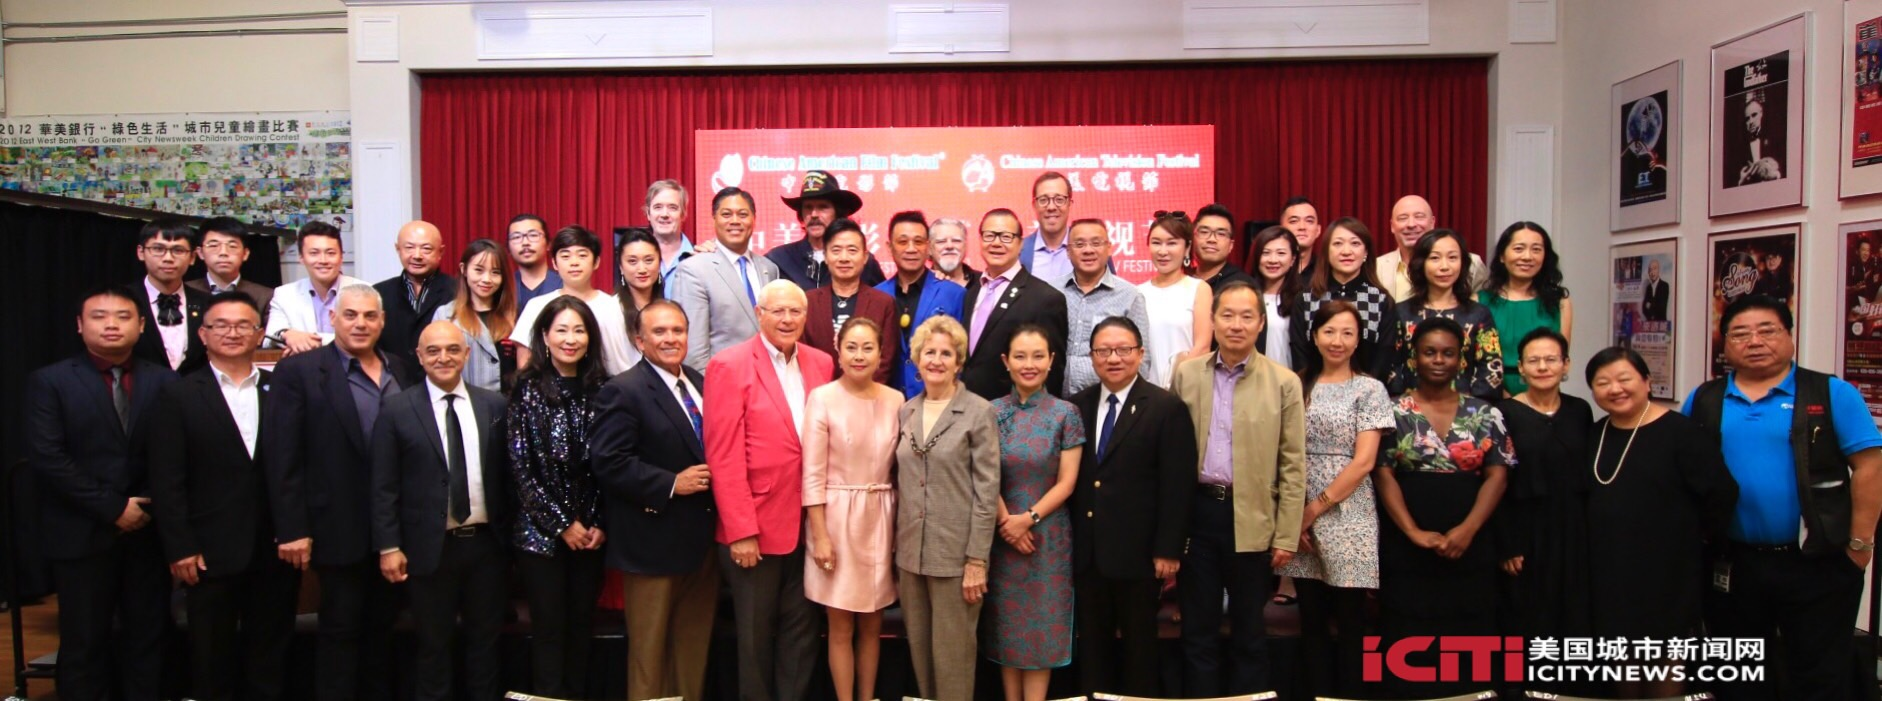 Chinese American Film Festival - The 15th Chinese American Film ...